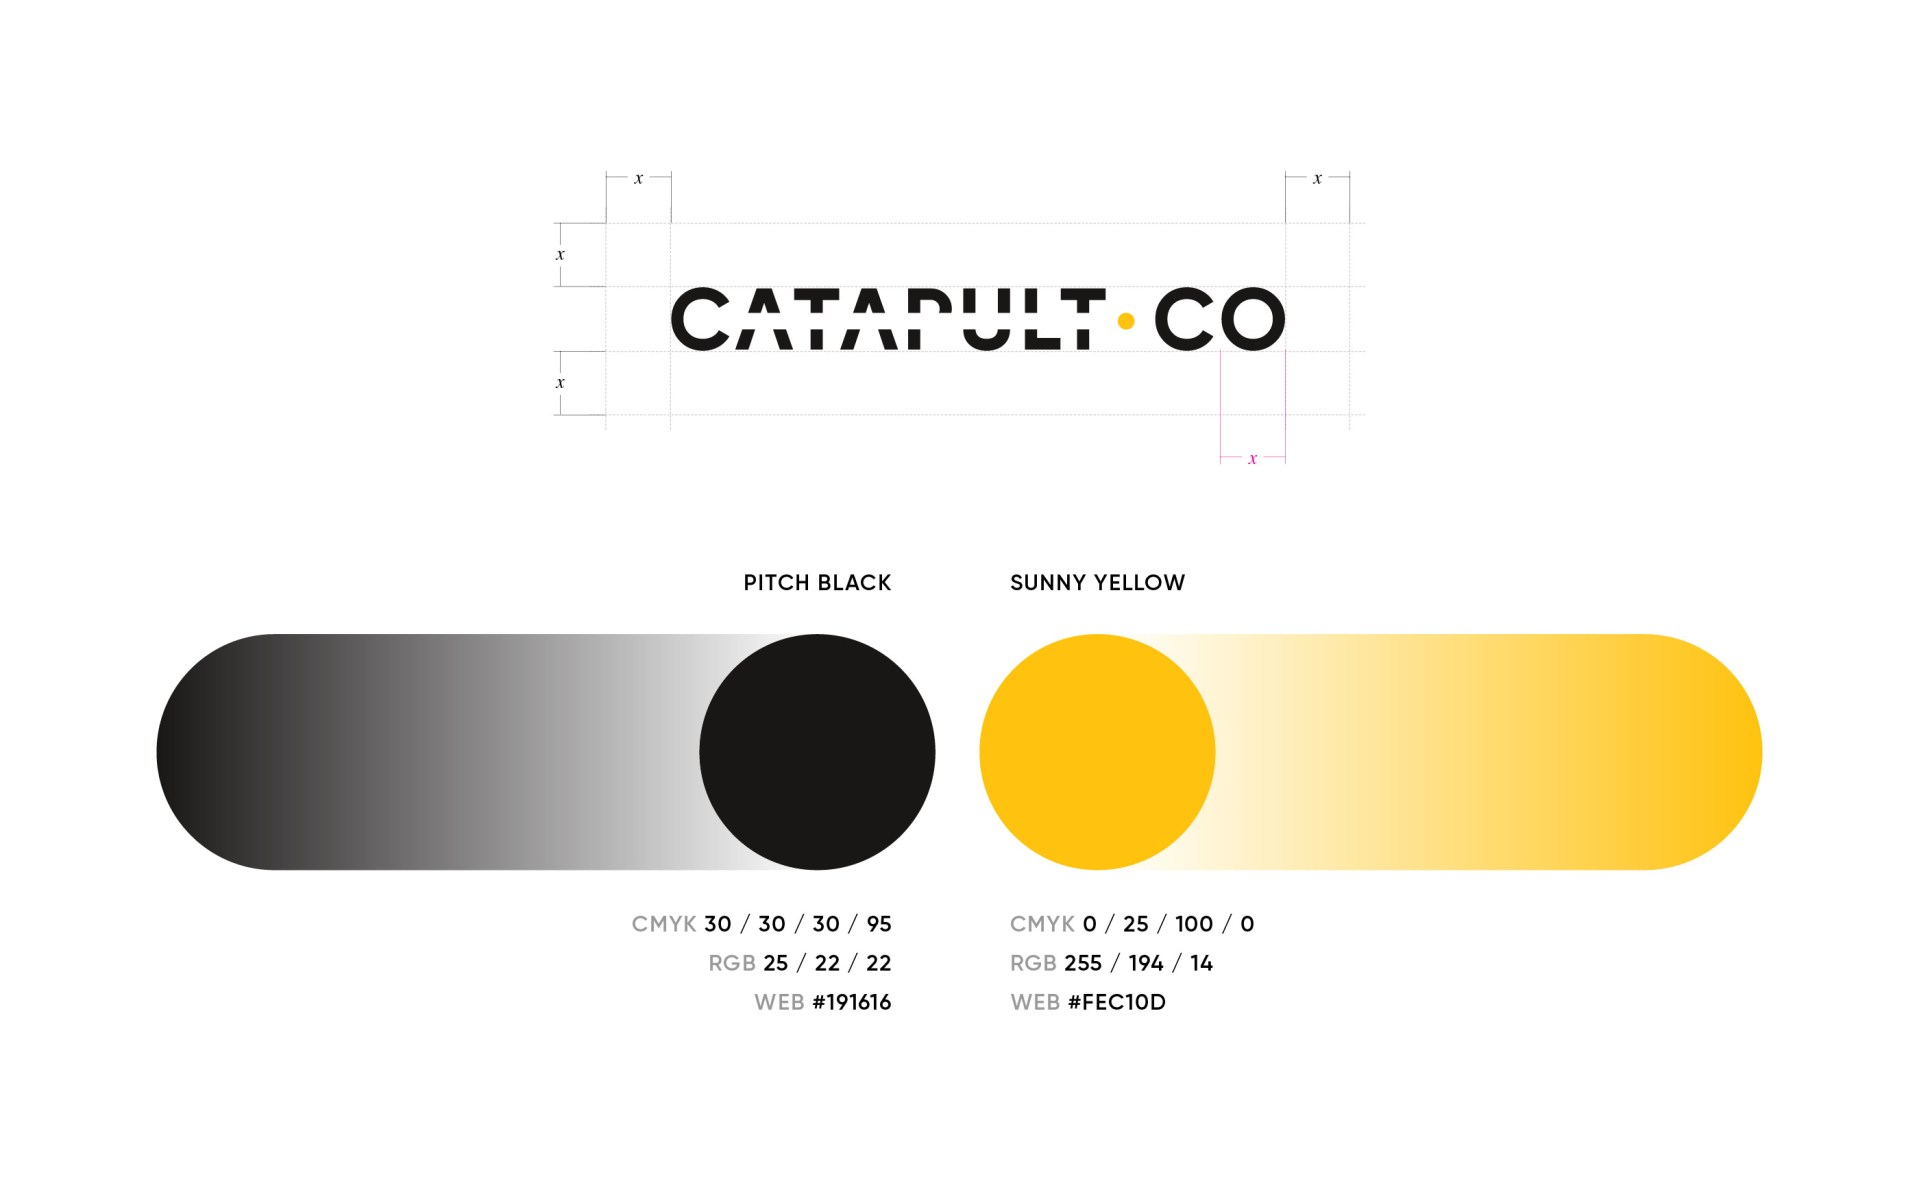 Catapult Co